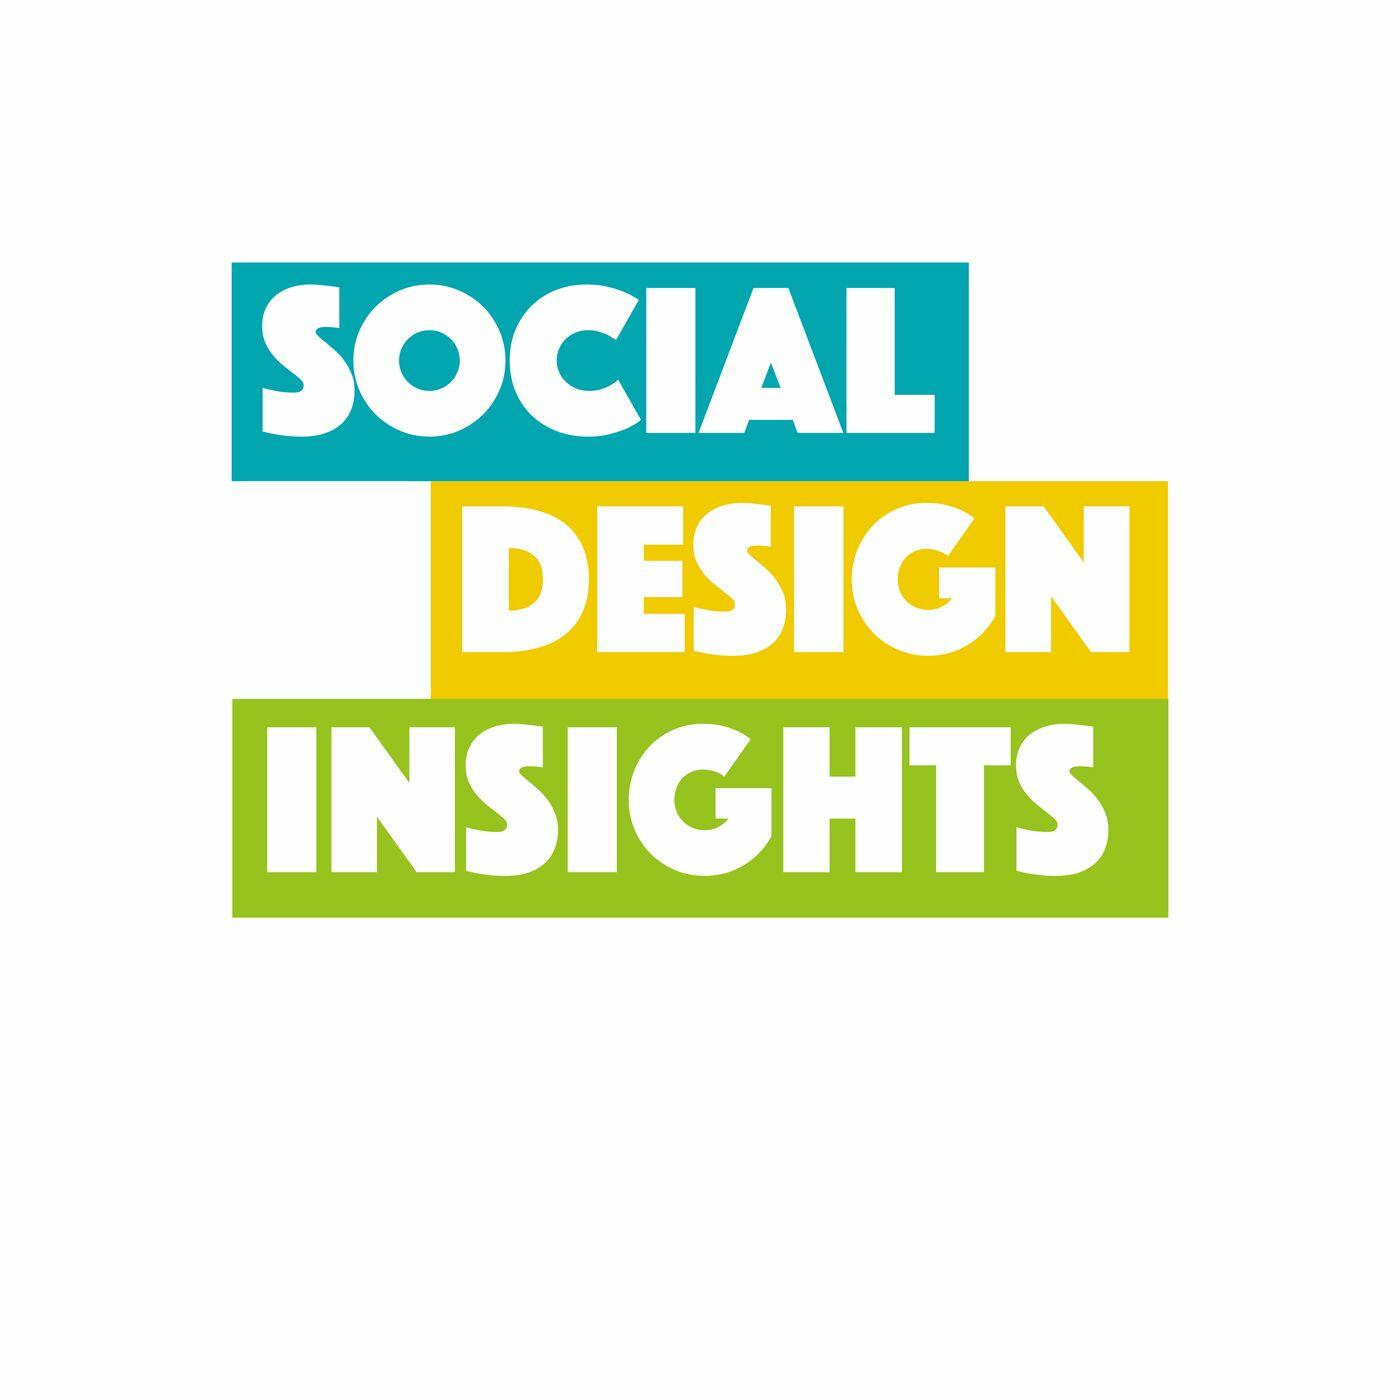 Social Design Insights